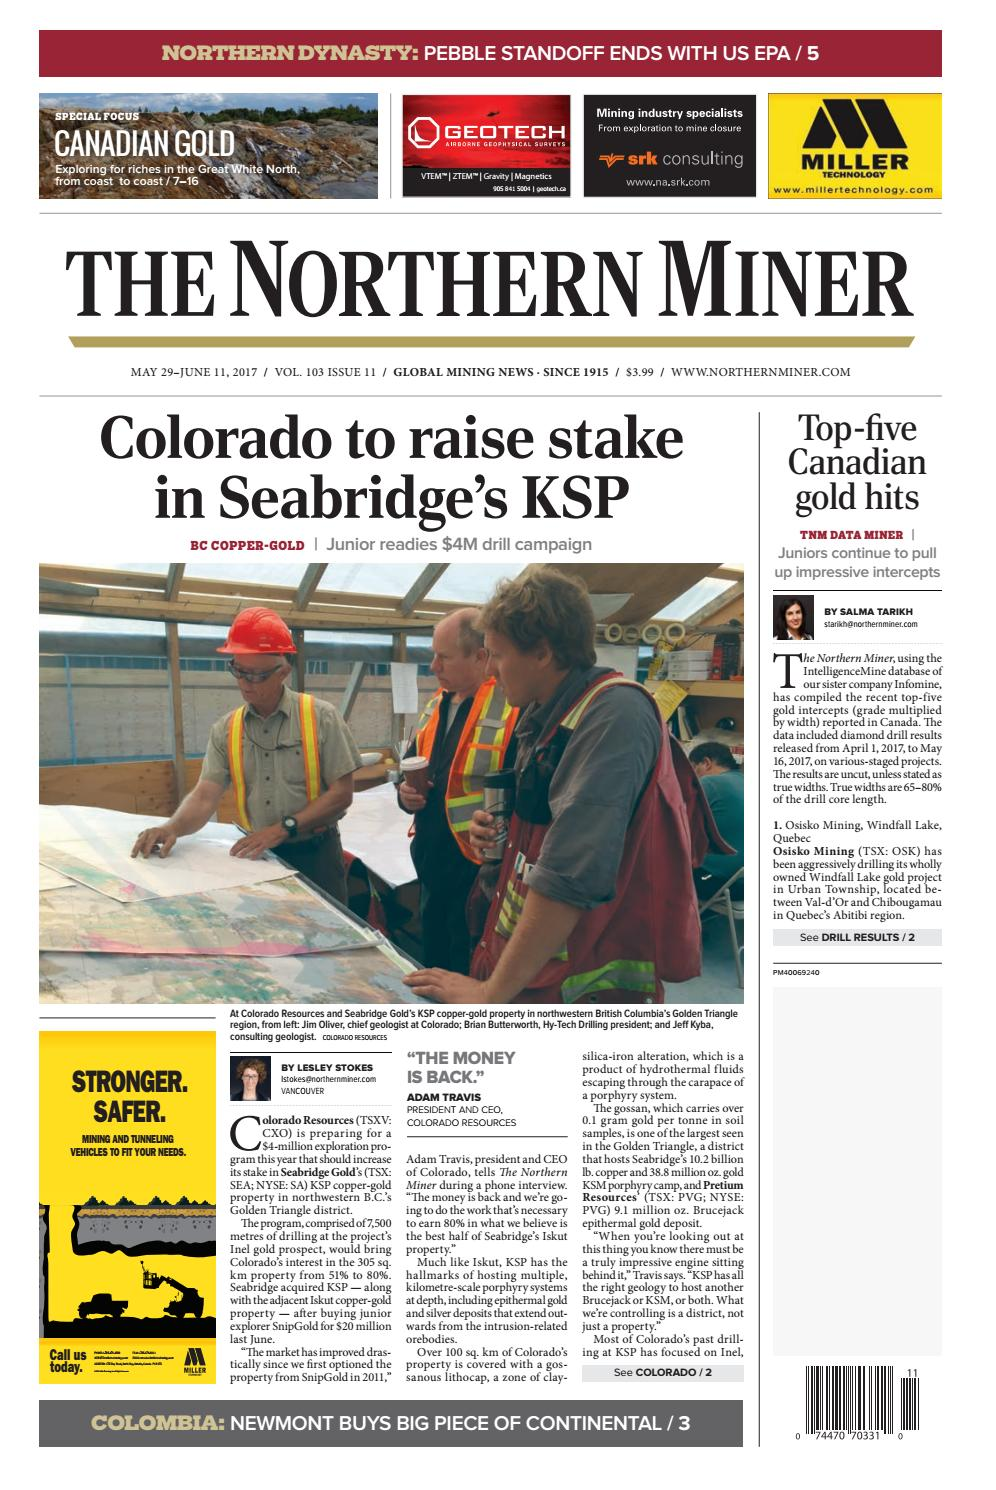 187 Niocorp Drilling Update >> The Northern Miner May 29 2017 Issue By The Northern Miner Group Issuu